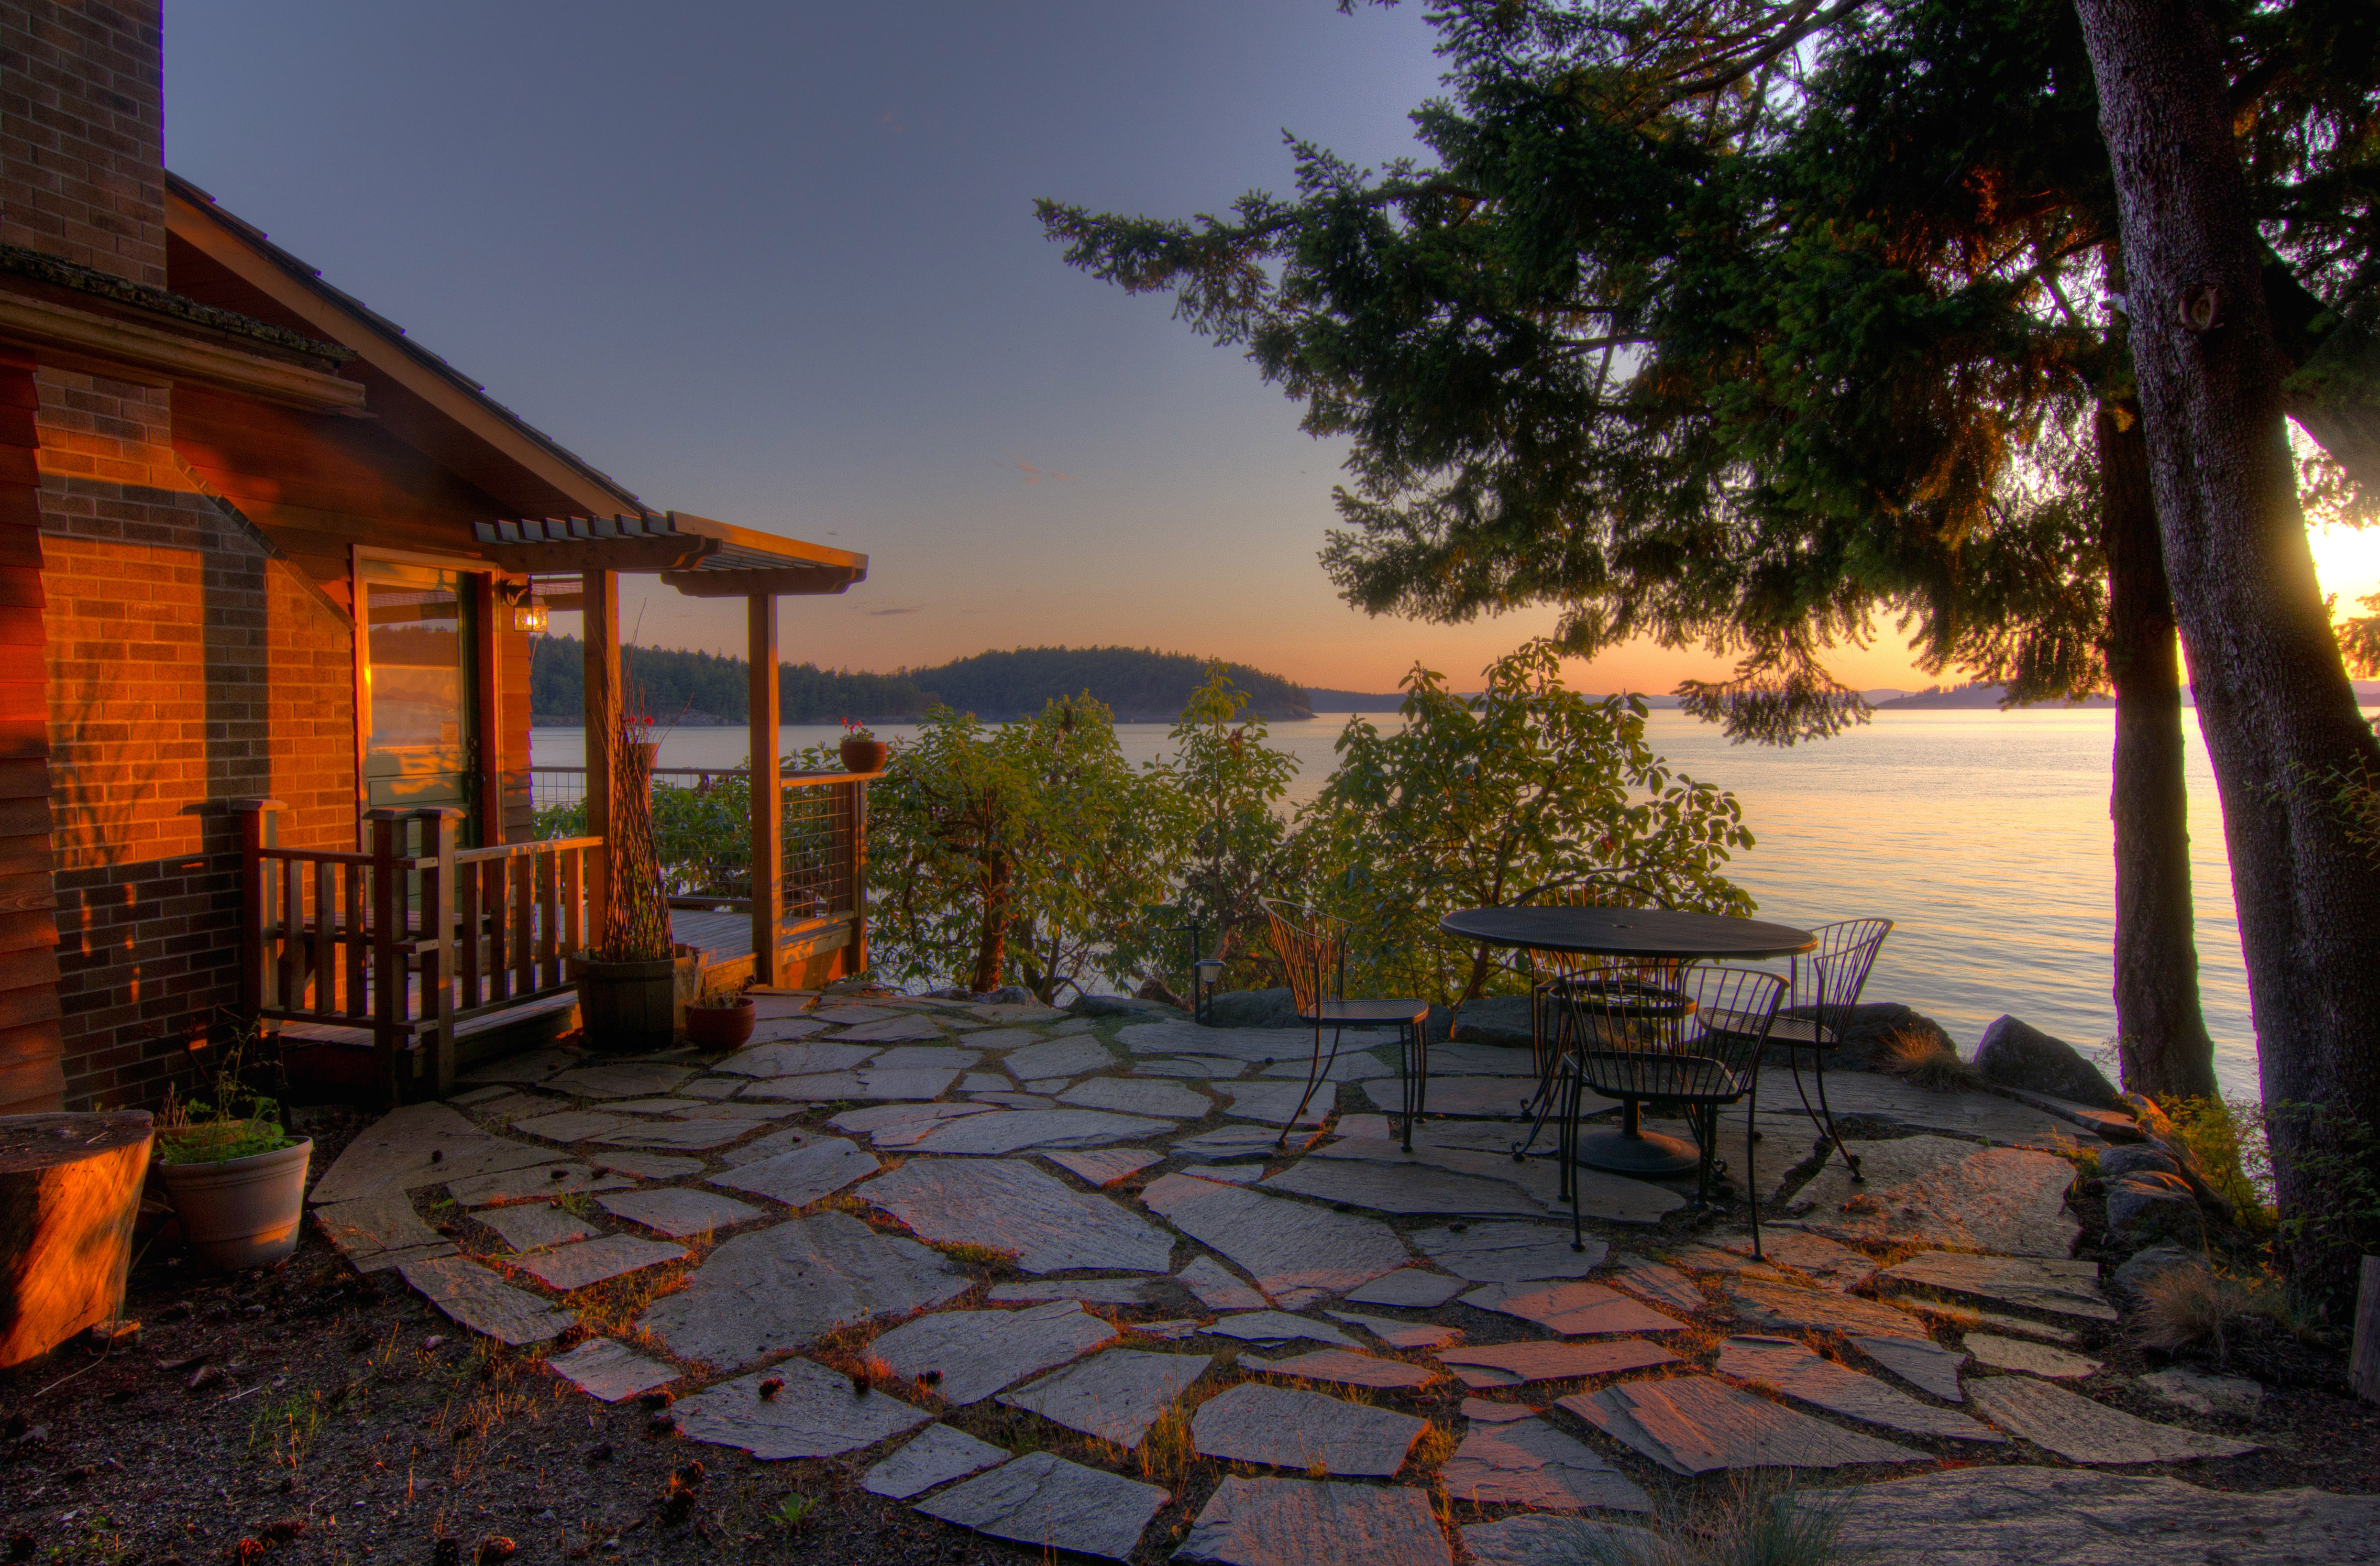 All Dream Cottages Amp Kingfish Inn On Orcas Island Wa